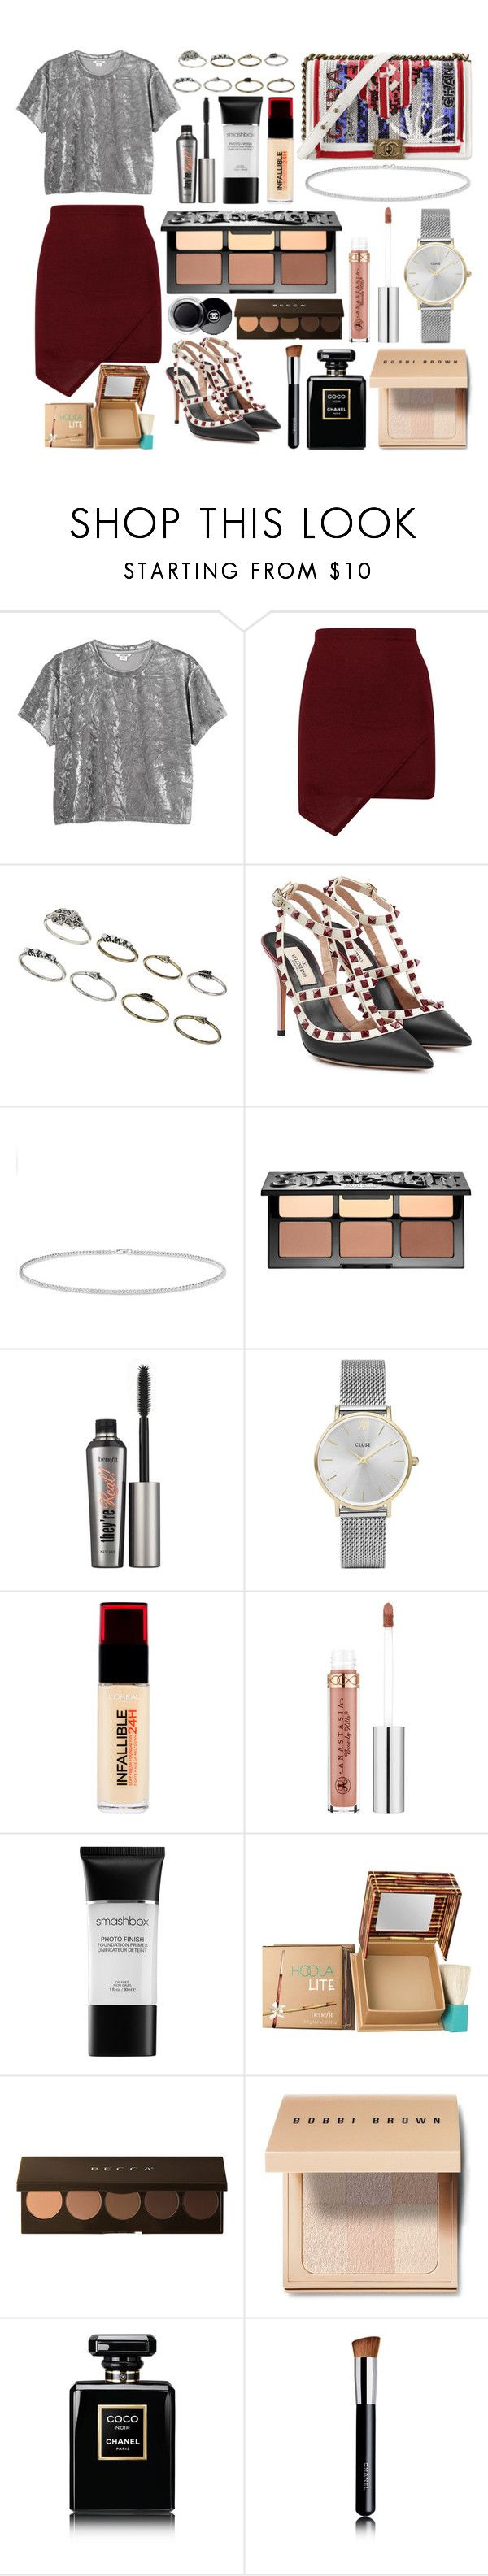 """""""293."""" by plaraa on Polyvore featuring moda, Monki, Topshop, Valentino, Chanel, Anne Sisteron, Sephora Collection, Benefit, CLUSE y L'Oréal Paris"""